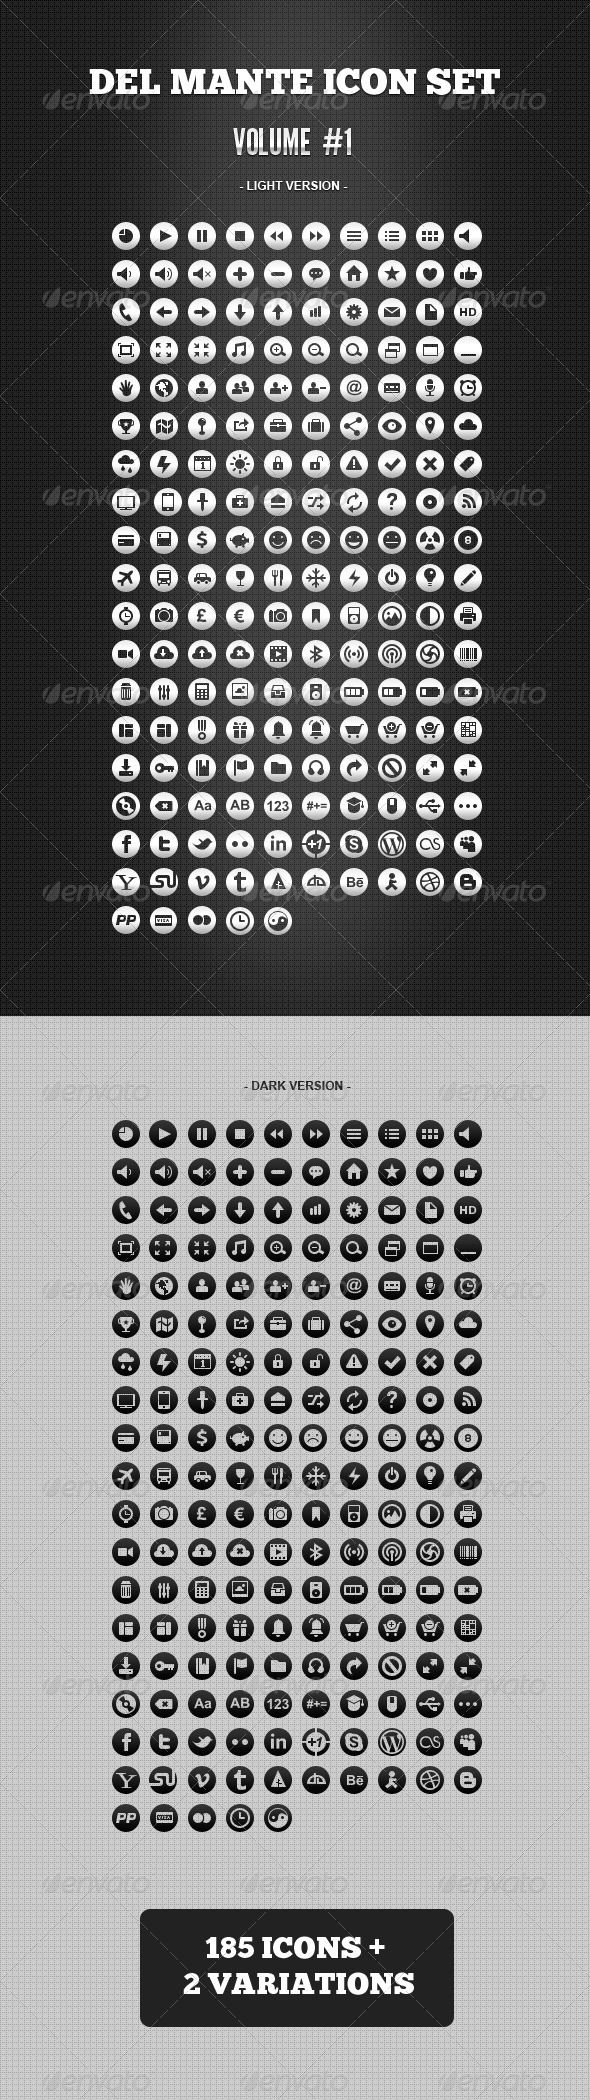 Del Mante Icon Set - Vol. 1 (370 icons)  #GraphicRiver